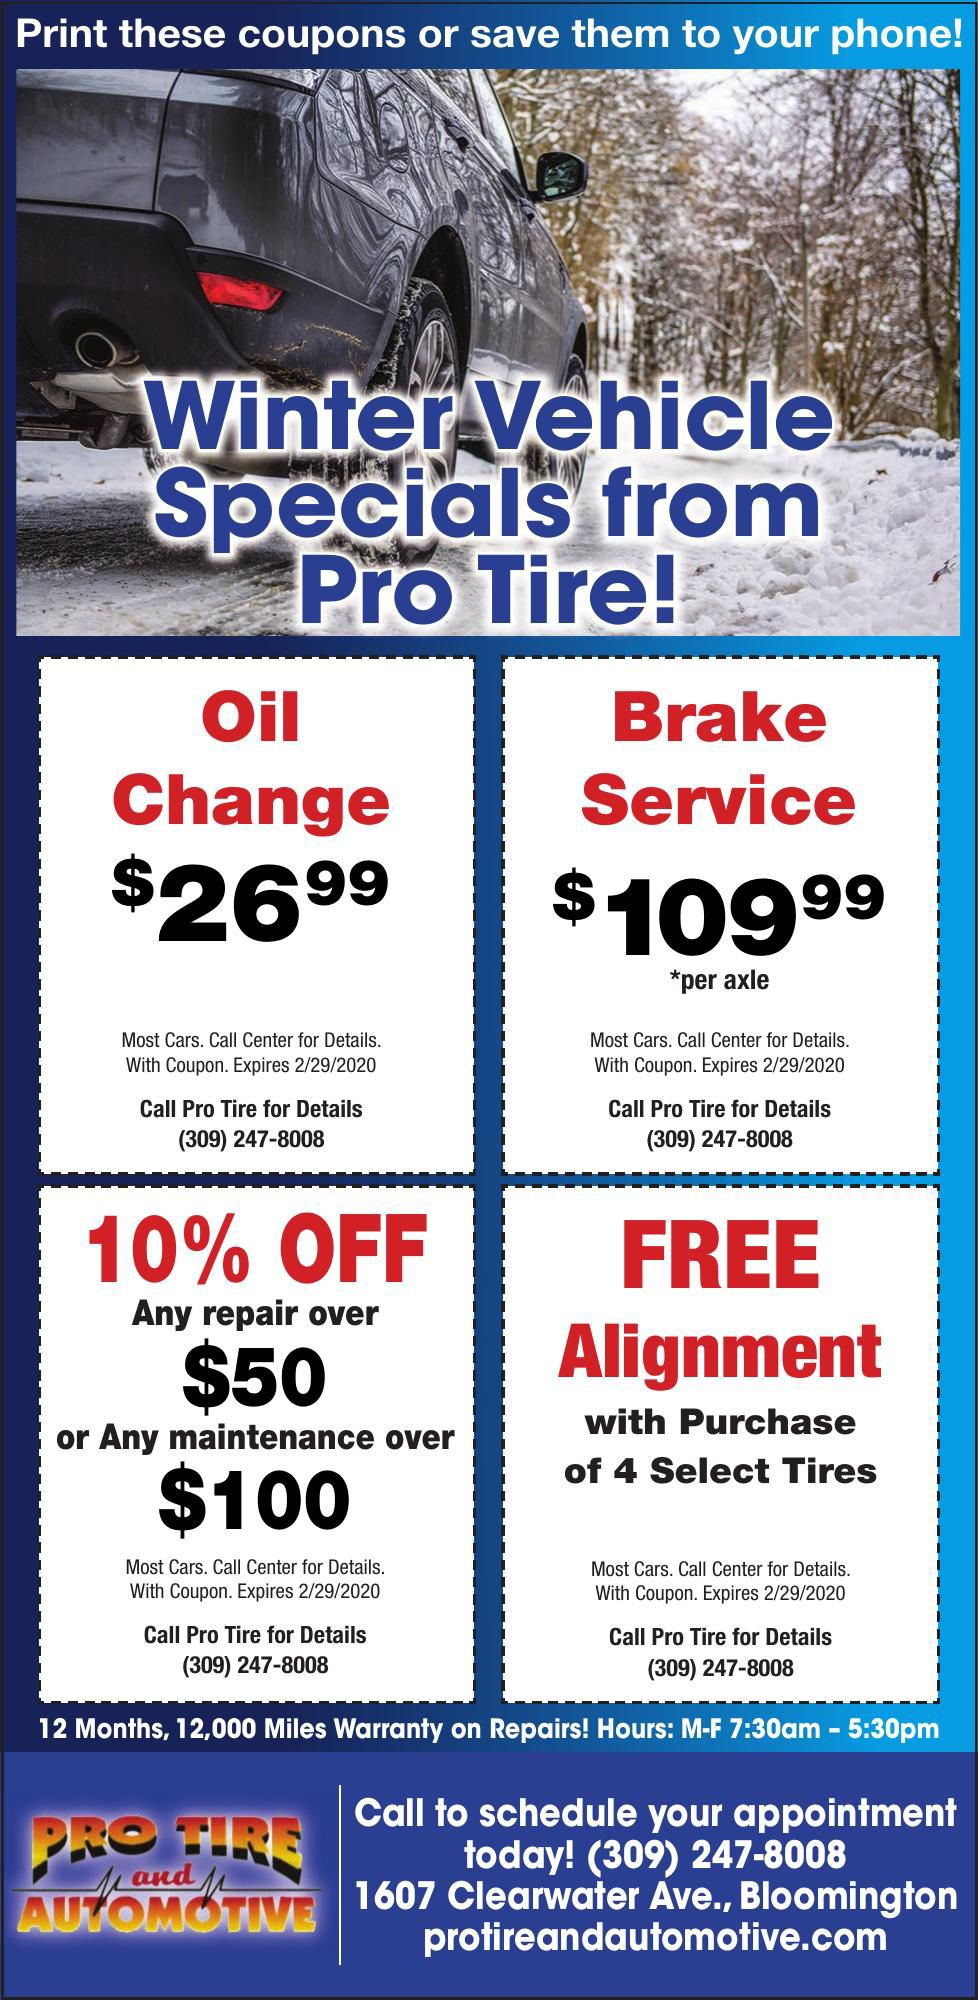 Winter Vehicle Specials Expiring Soon from Pro Tire!